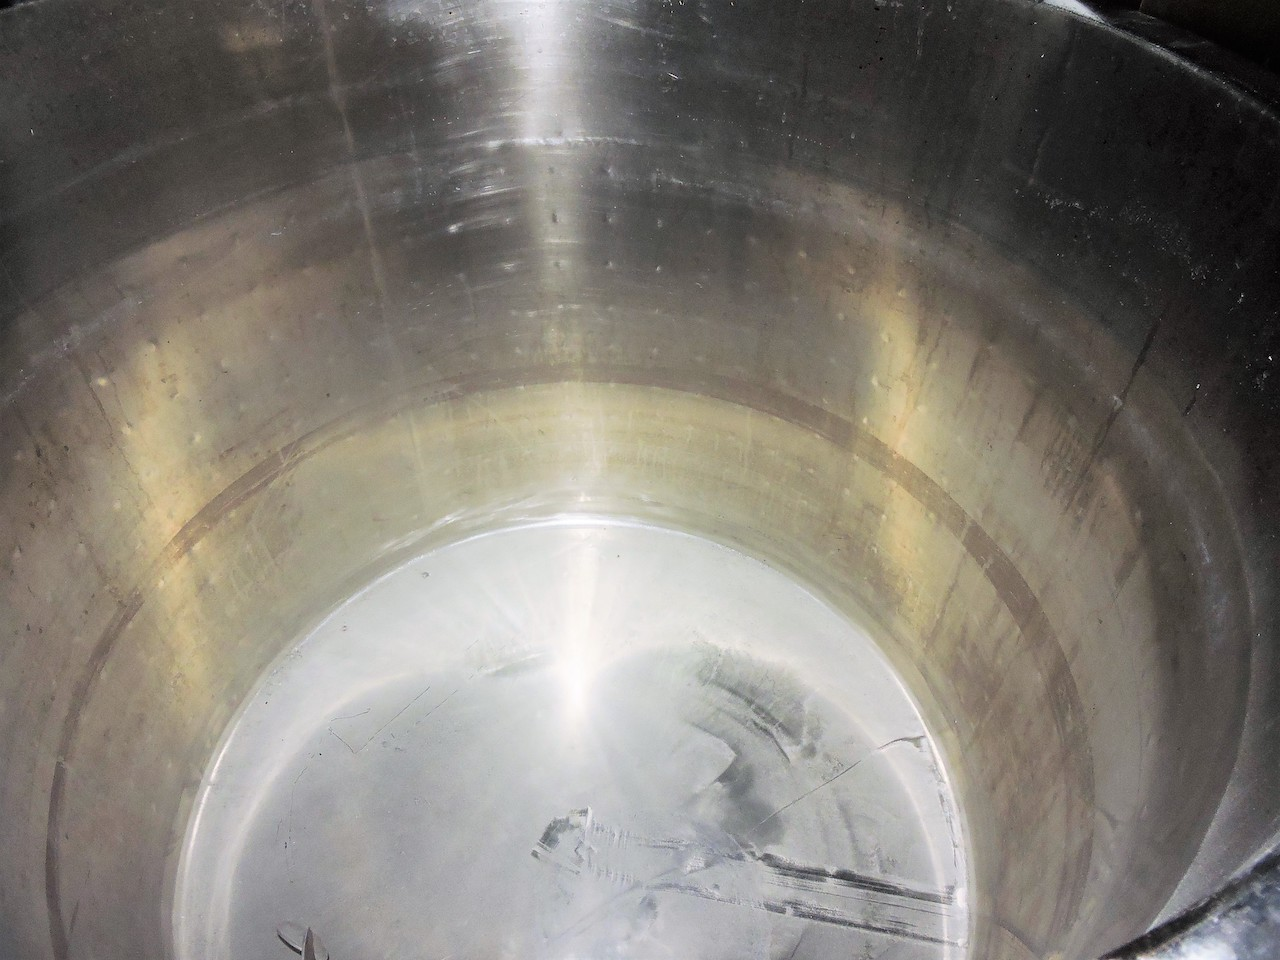 Lot 40 - NATIONAL STAINLESS STEEL TANK 200 GALLONS